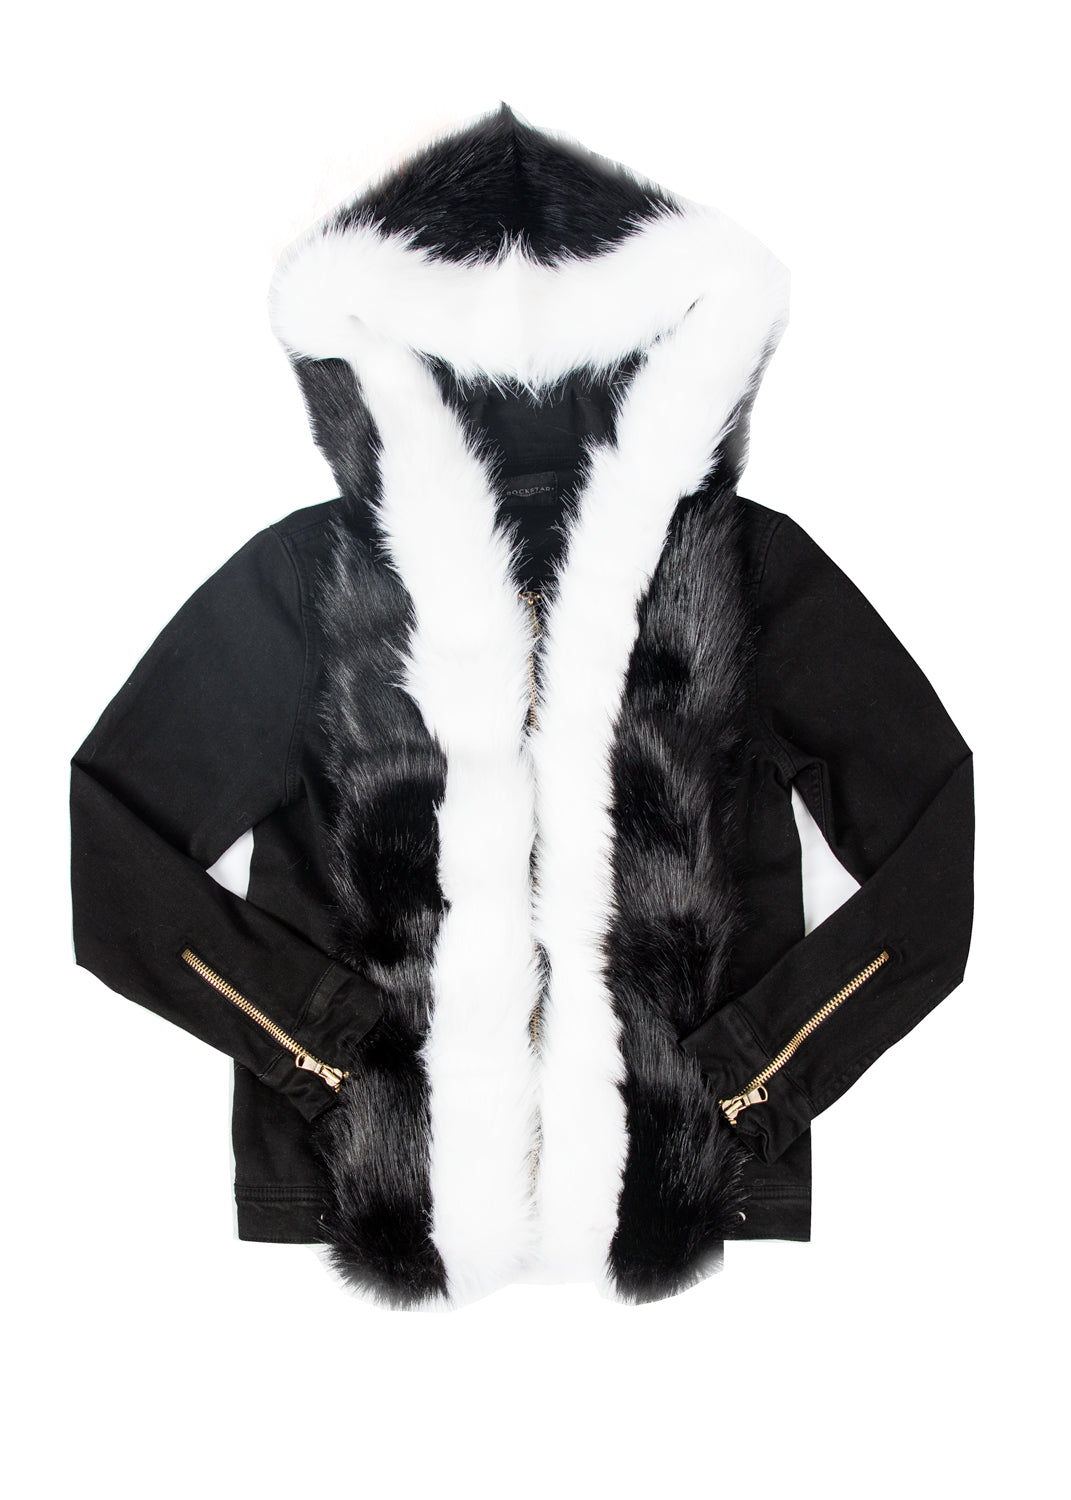 Olin Black Fur Jacket